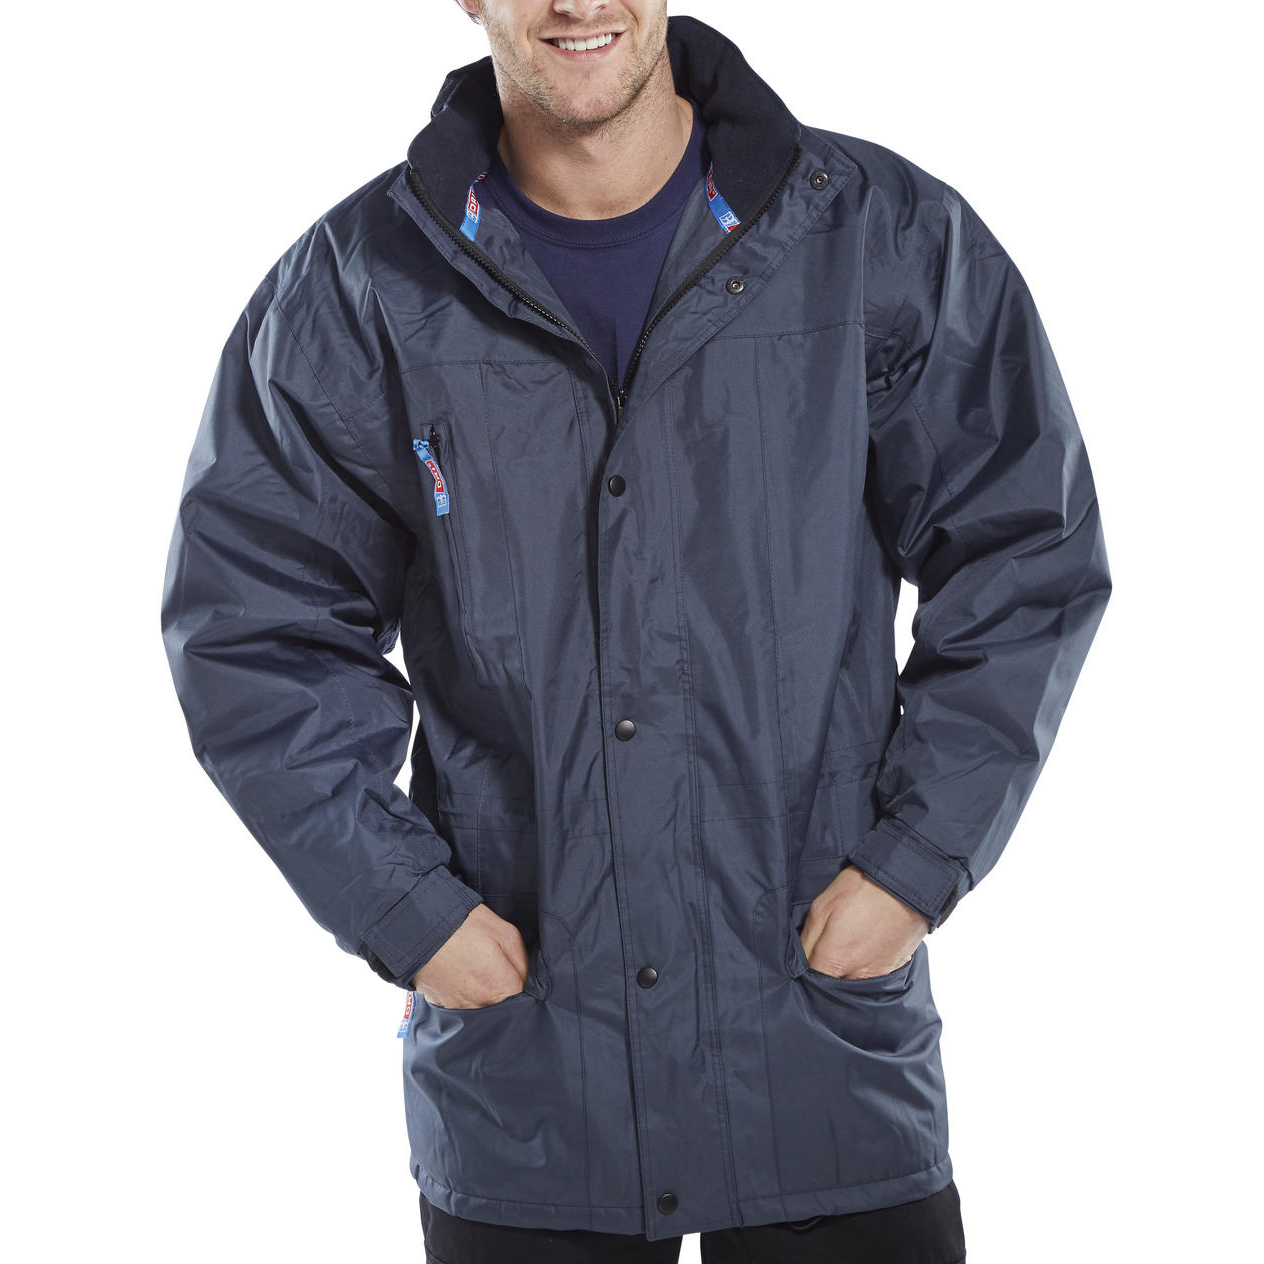 B-Dri Weatherproof Guardian Jacket with Concealed Hood Large Navy Blue Ref GU88PNL *Up to 3 Day Leadtime*